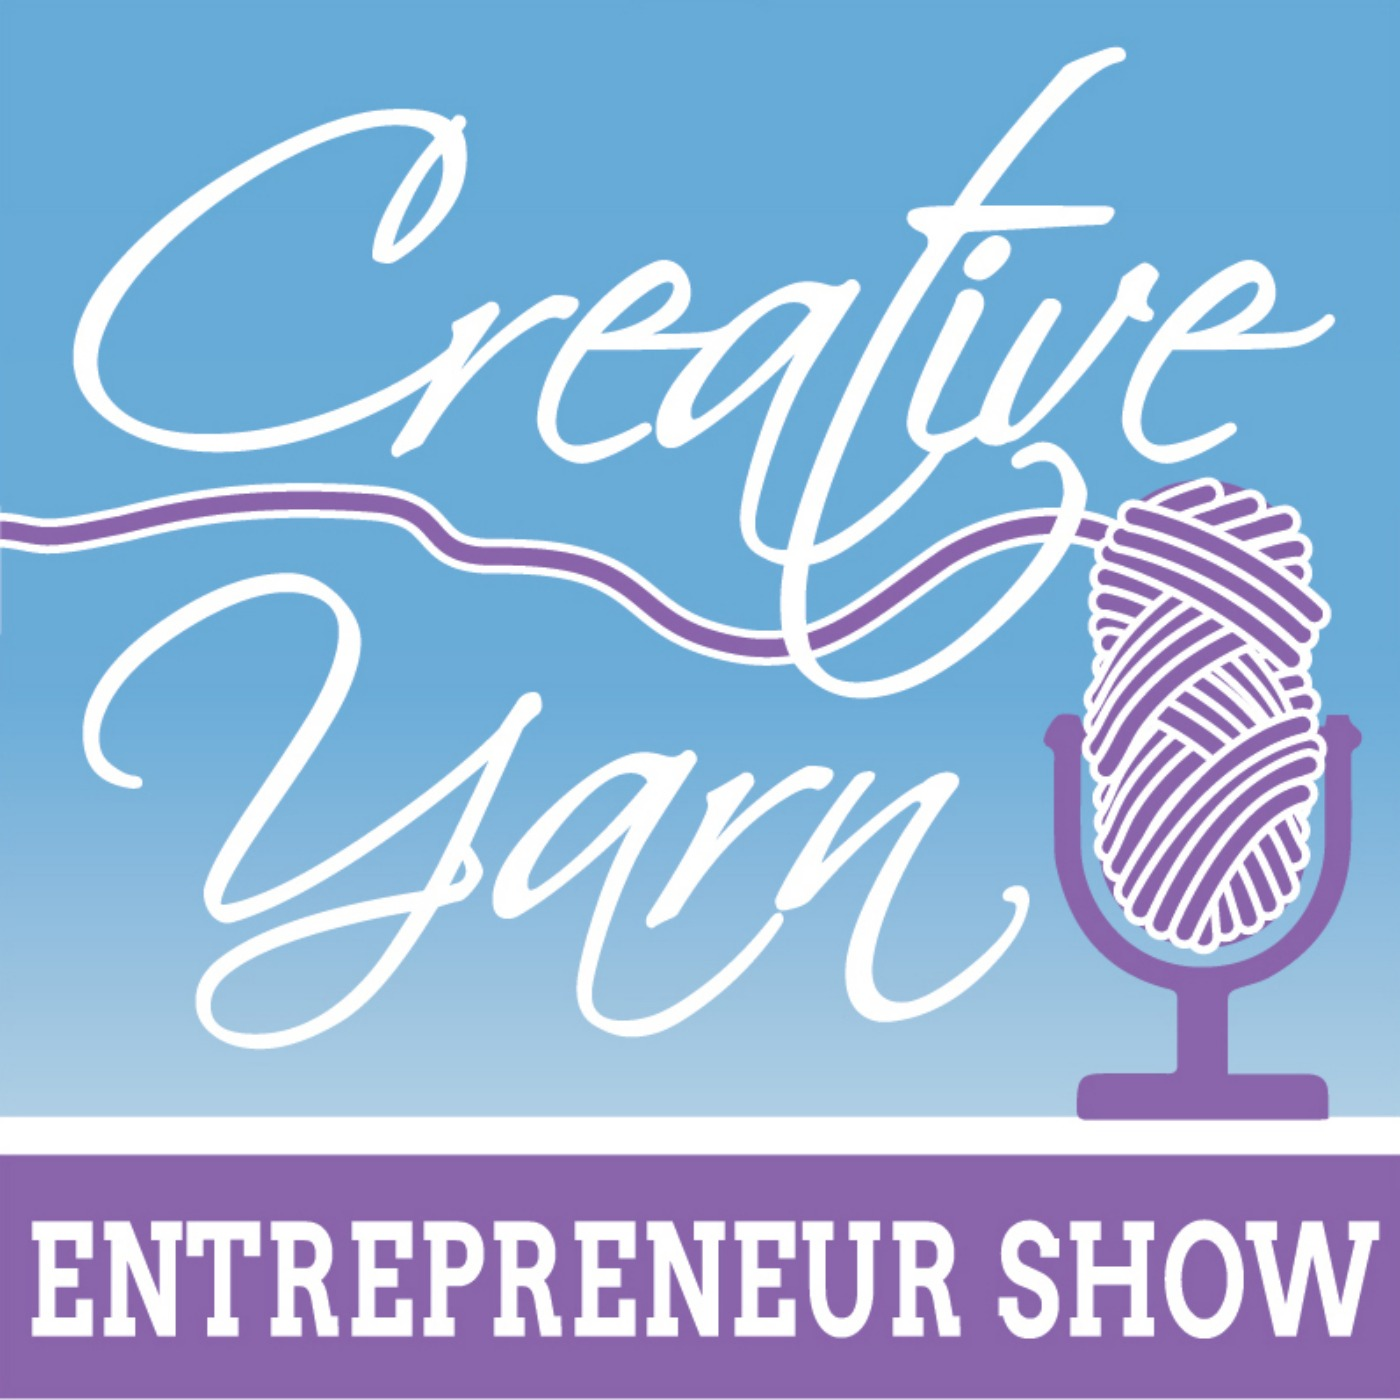 Episode 39: Crochet & Knitting Design & Self-Publishing Mini Series 4: Photographing Your Pattern - The Creative Yarn Entrepreneur Show